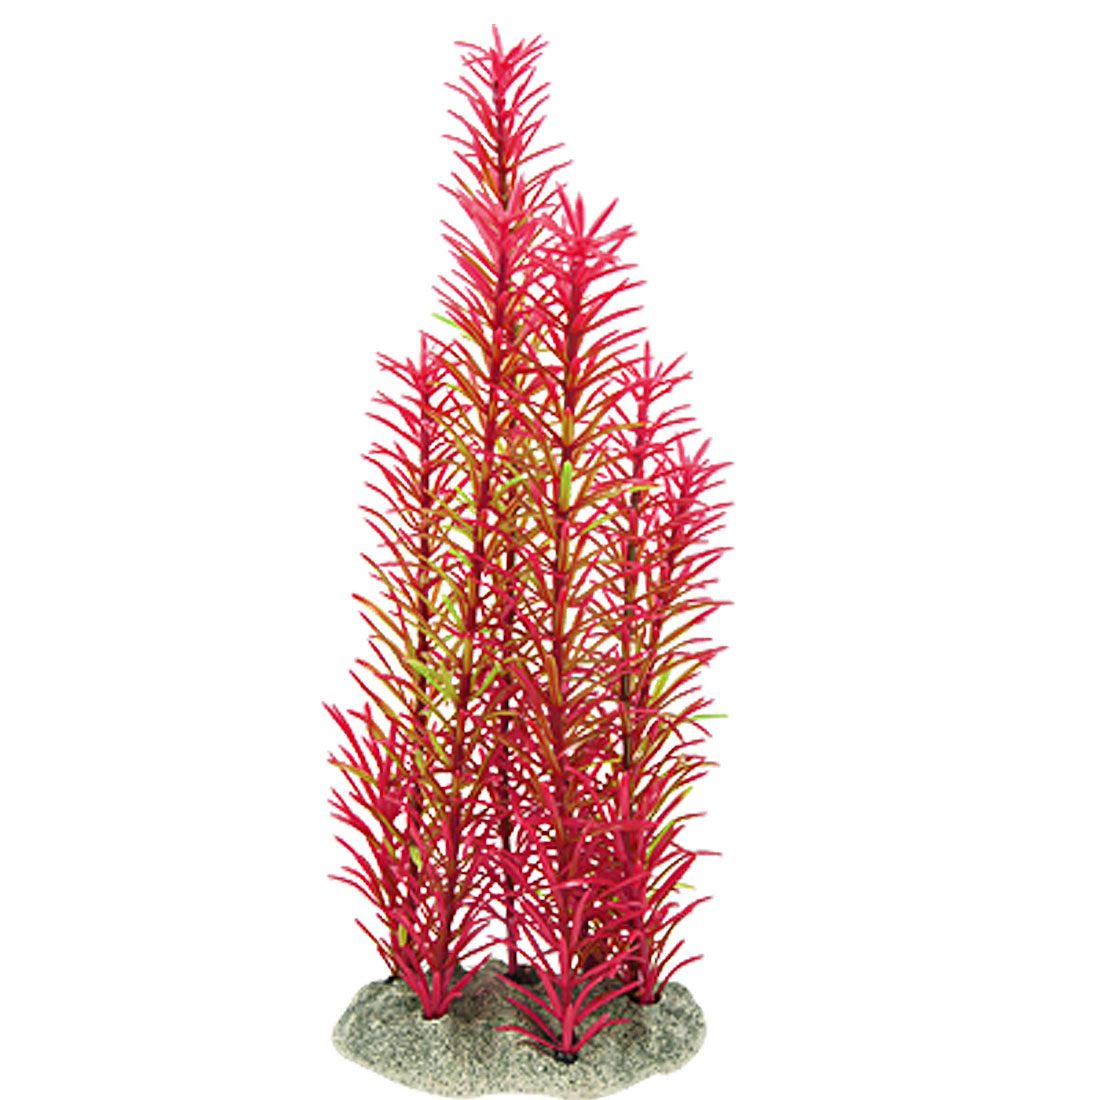 Fish Tank 22cm Height Red Green Underwater Grass Plants Ornament